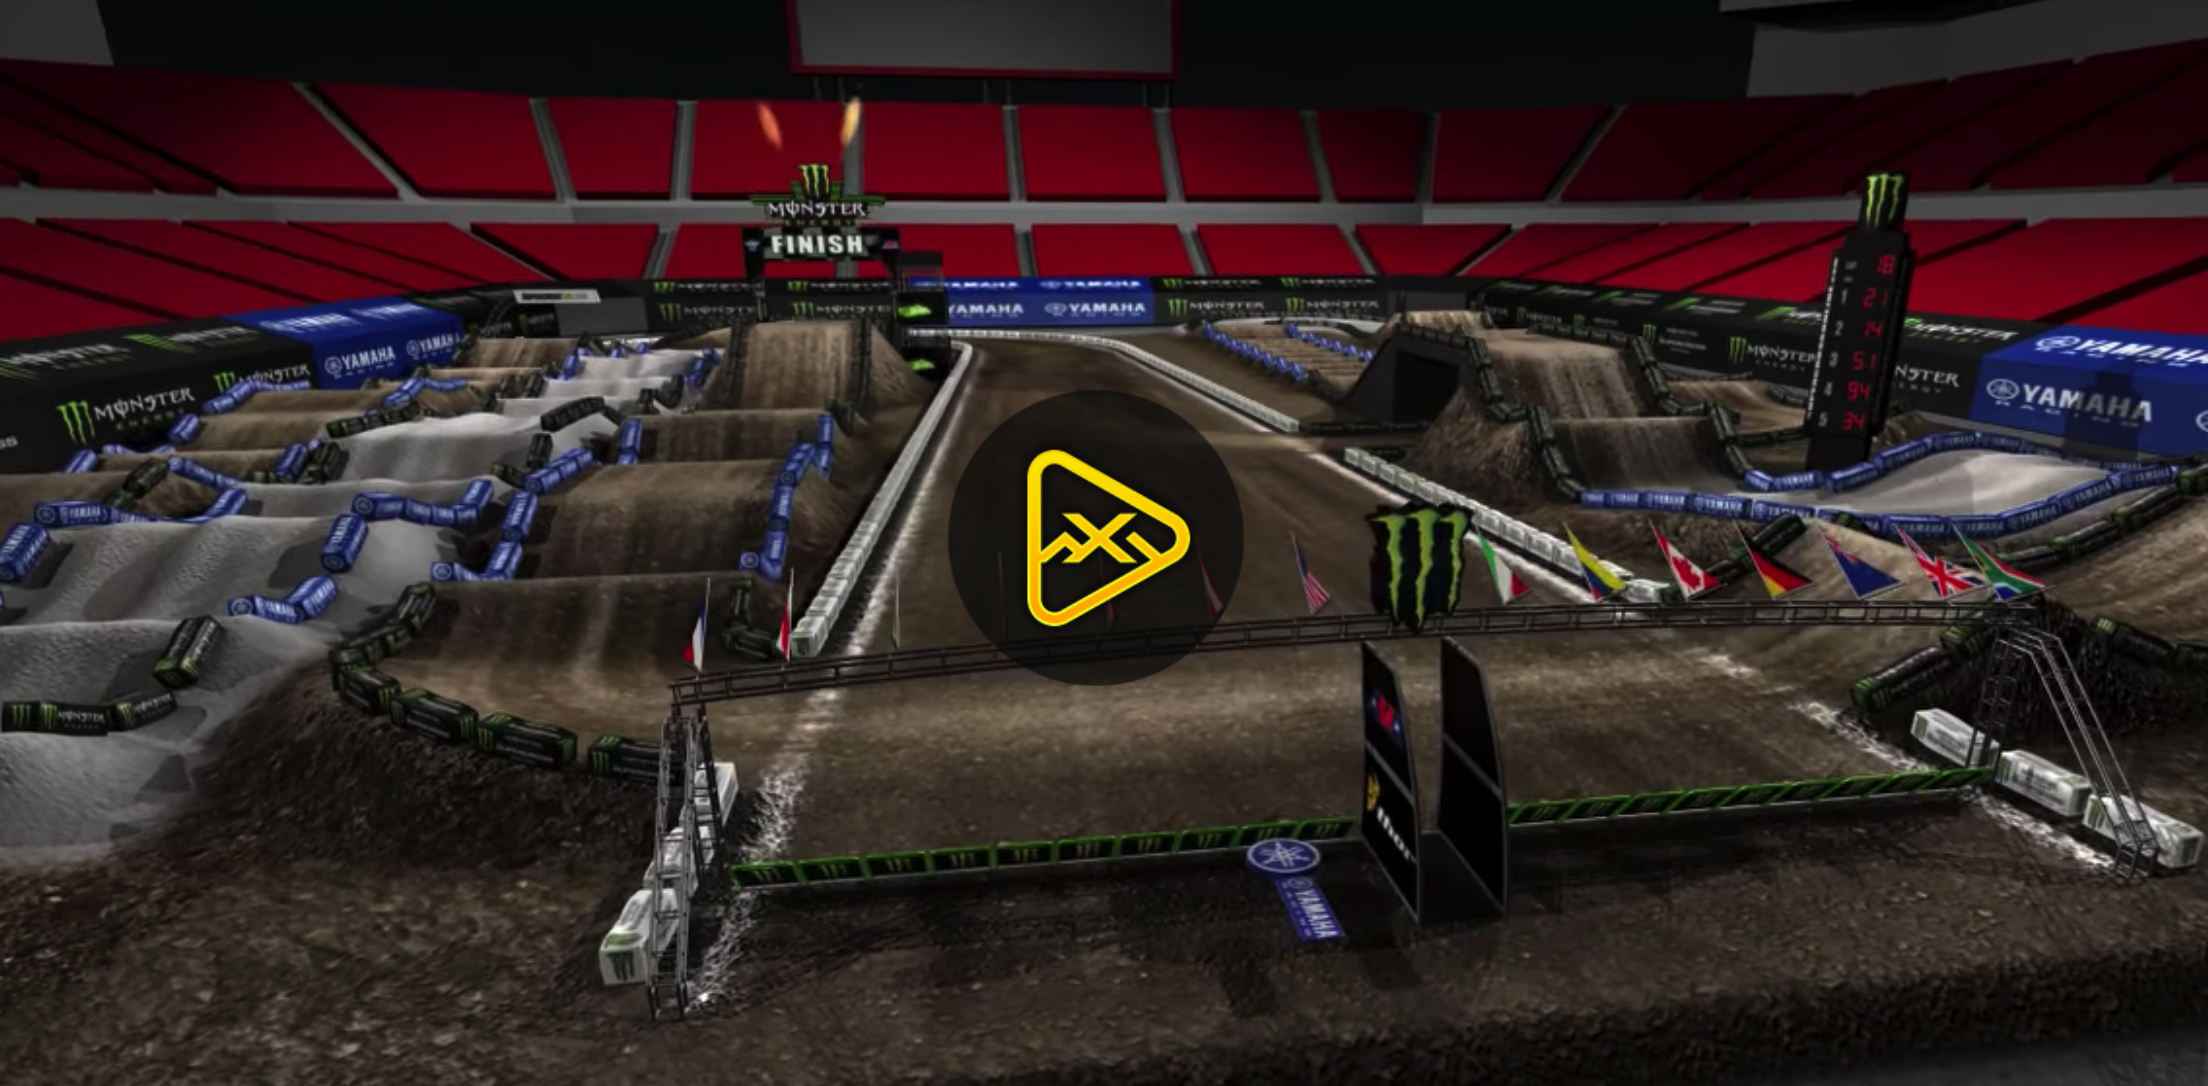 2018 Tampa SX Animated Track Map